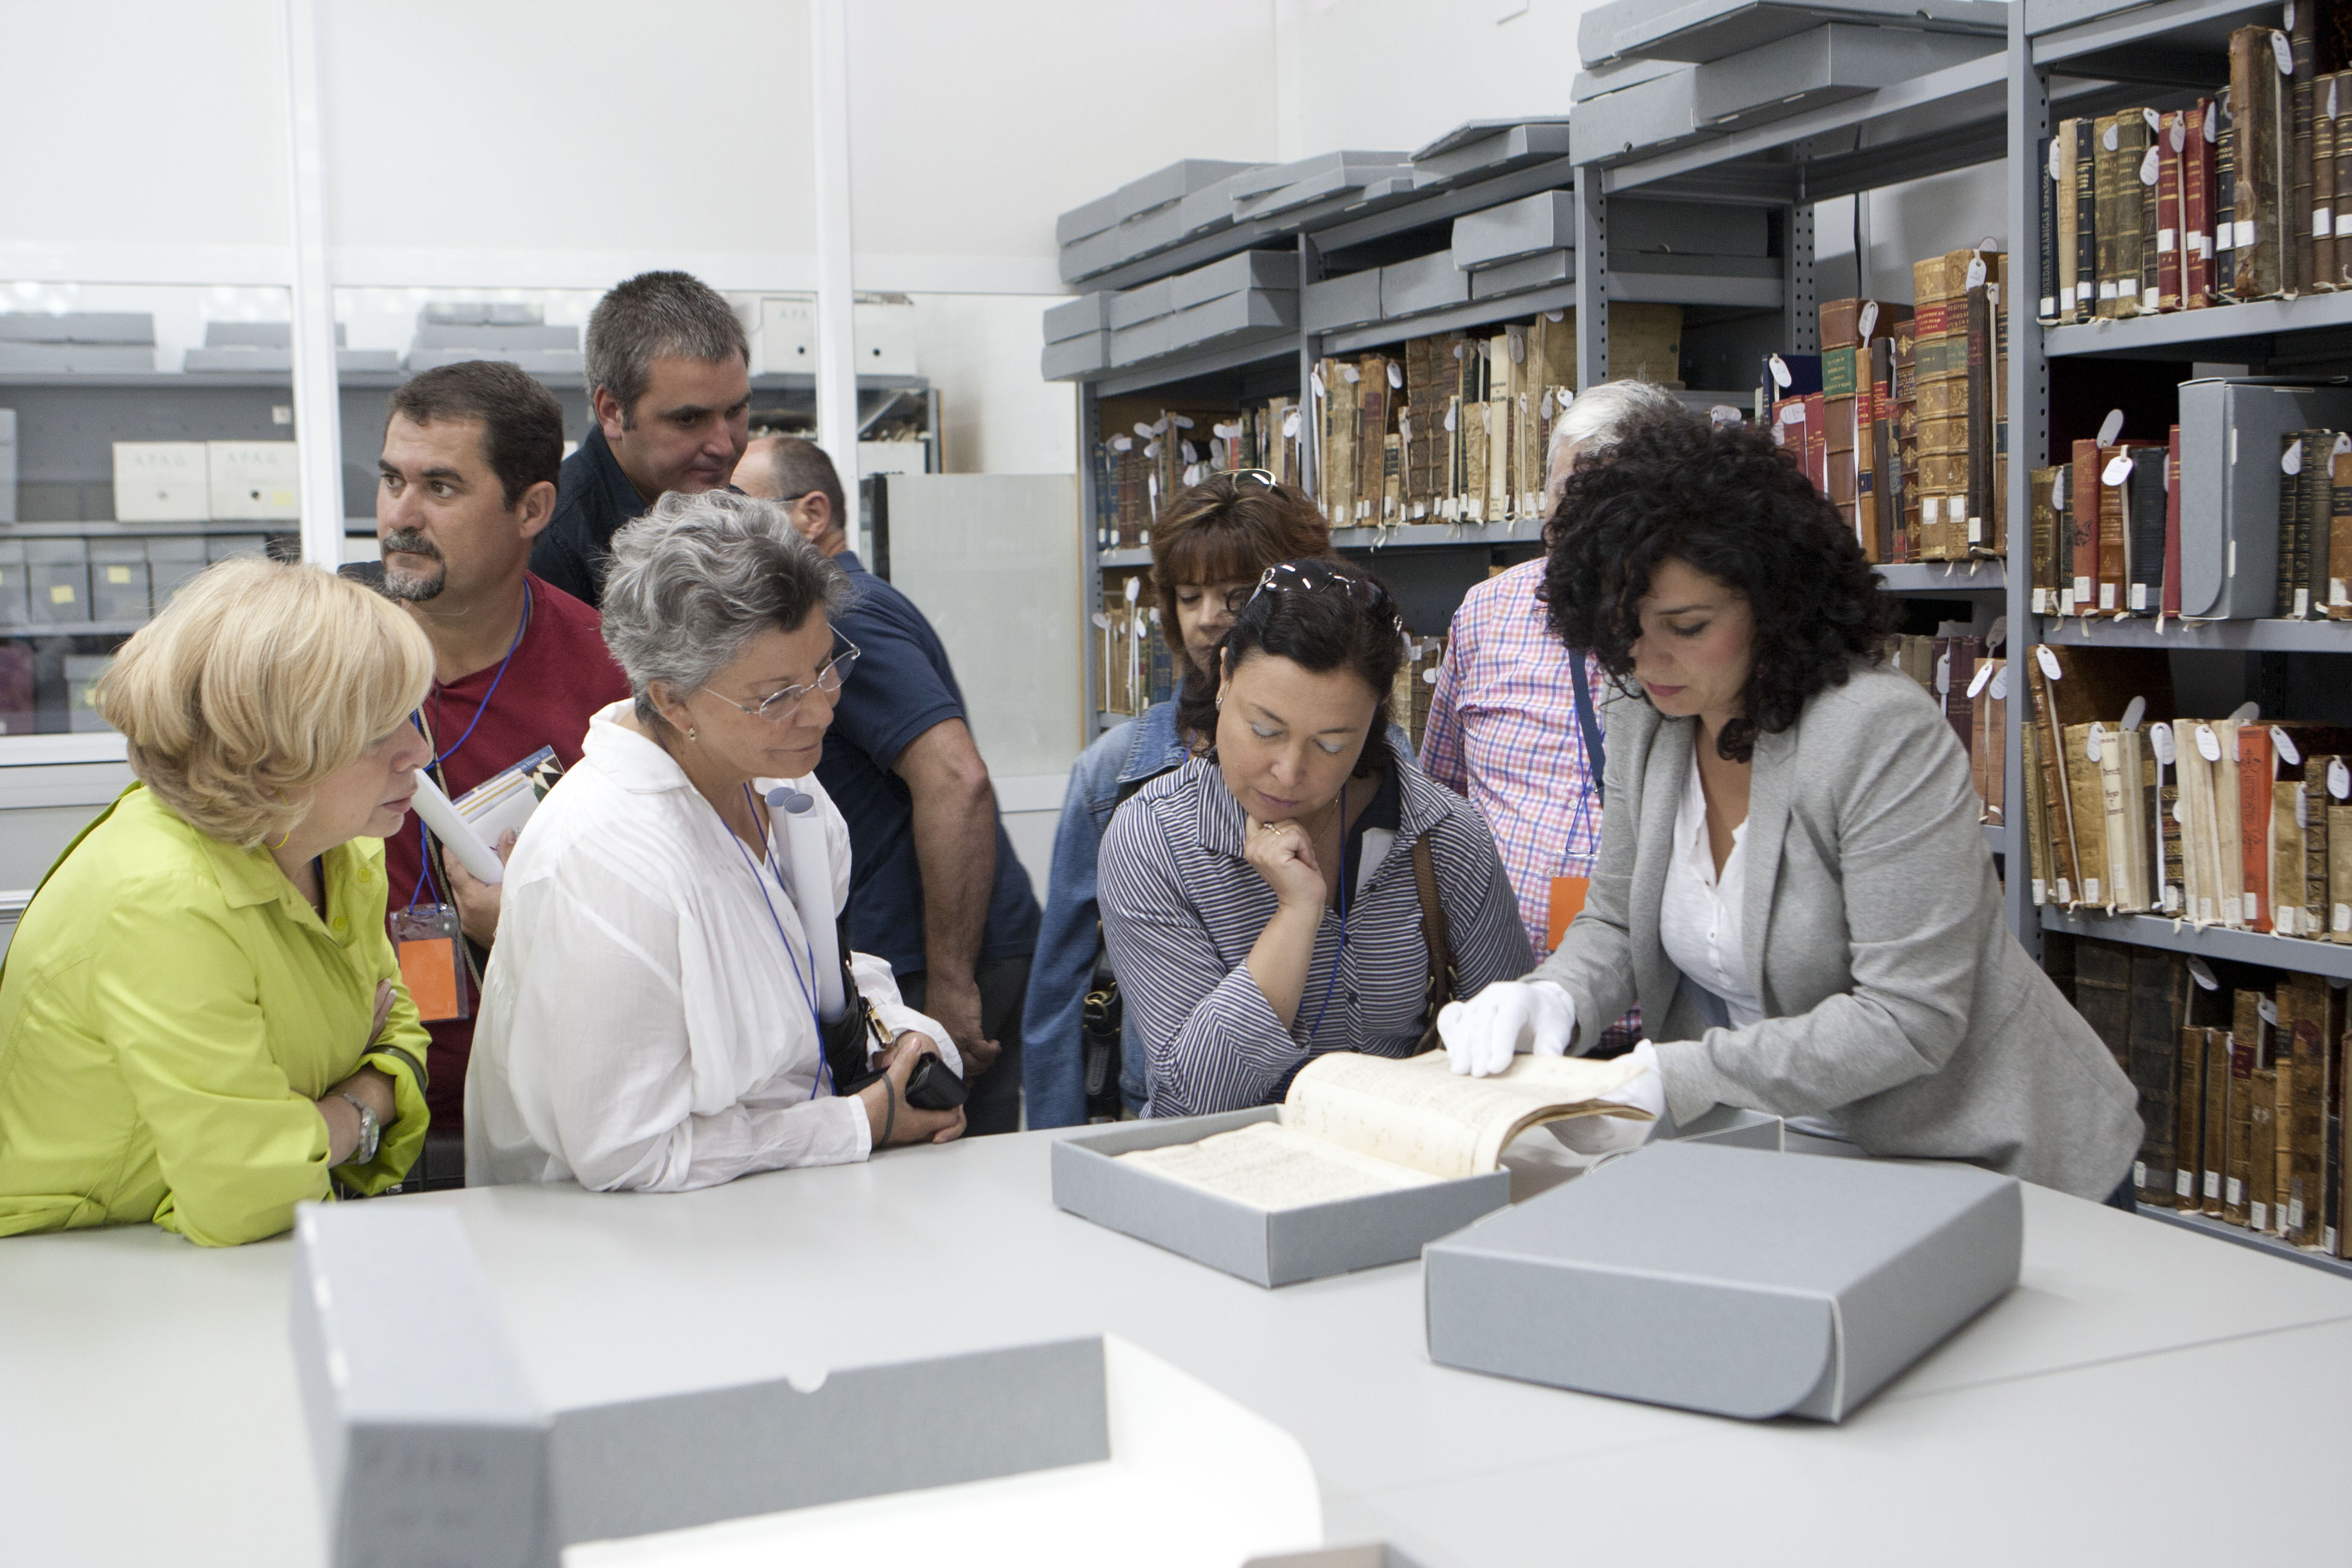 The Alhambra organizes free guided visits on the occa-sion of International Archives Day